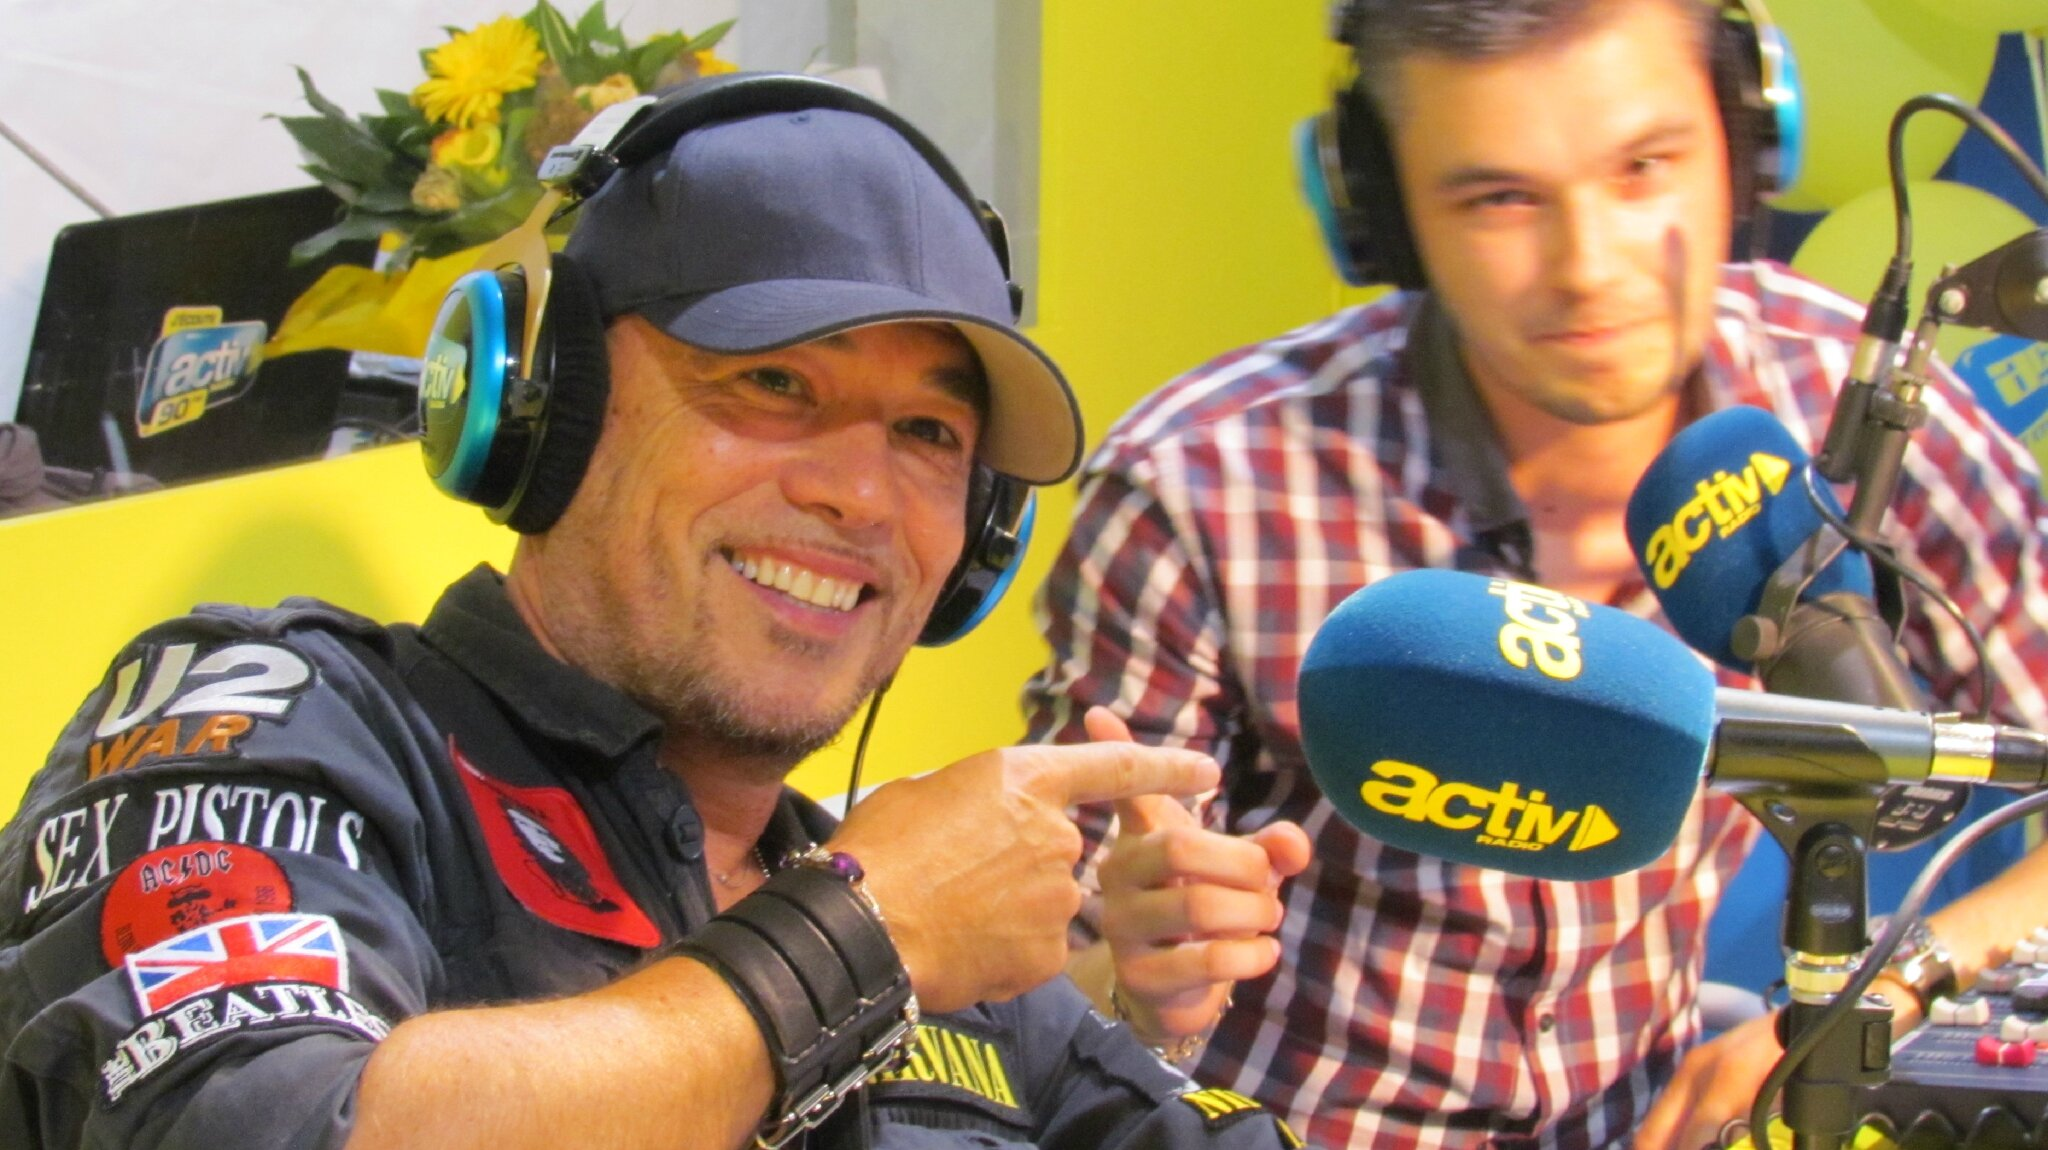 Journée promo pour @ObispoPascal le 19 septembre à Saint Etienne (Podcasts & Replay)